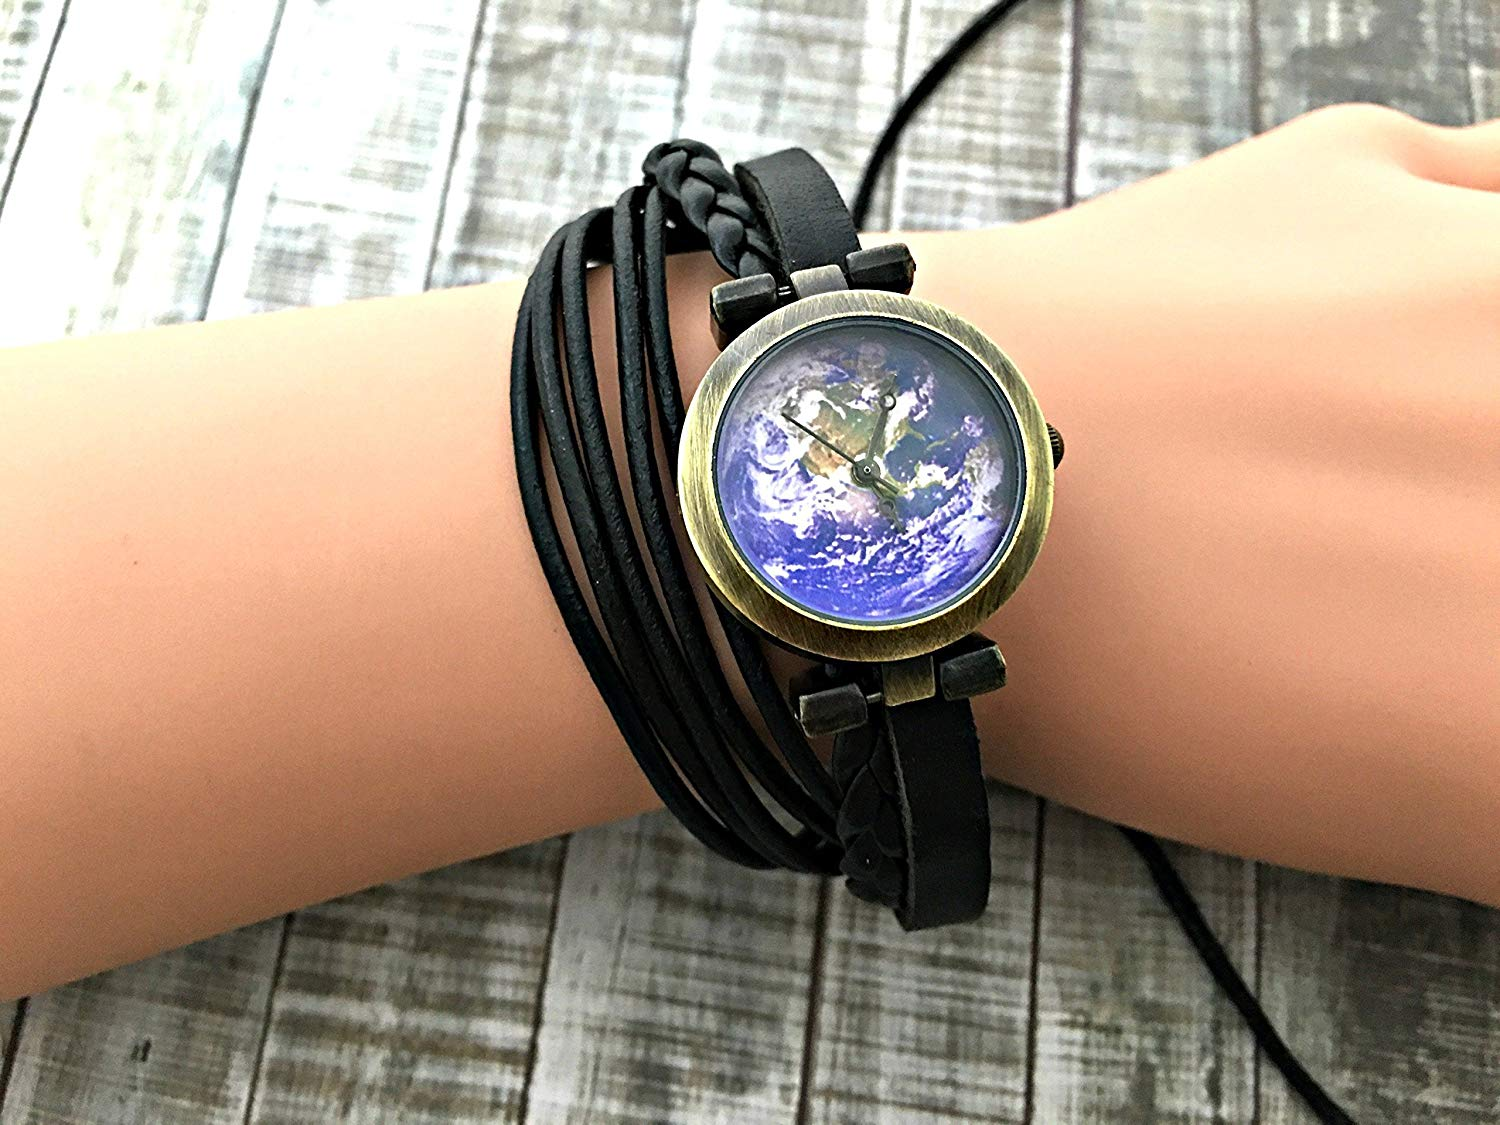 Earth Wrap Bracelet Leather Watch, Leather Wrap Bracelet Watch, Leather Wrap Art Watch, Vintage Retro Wrap Bracelet Watch, Wrap Genuine Leather Watch 017